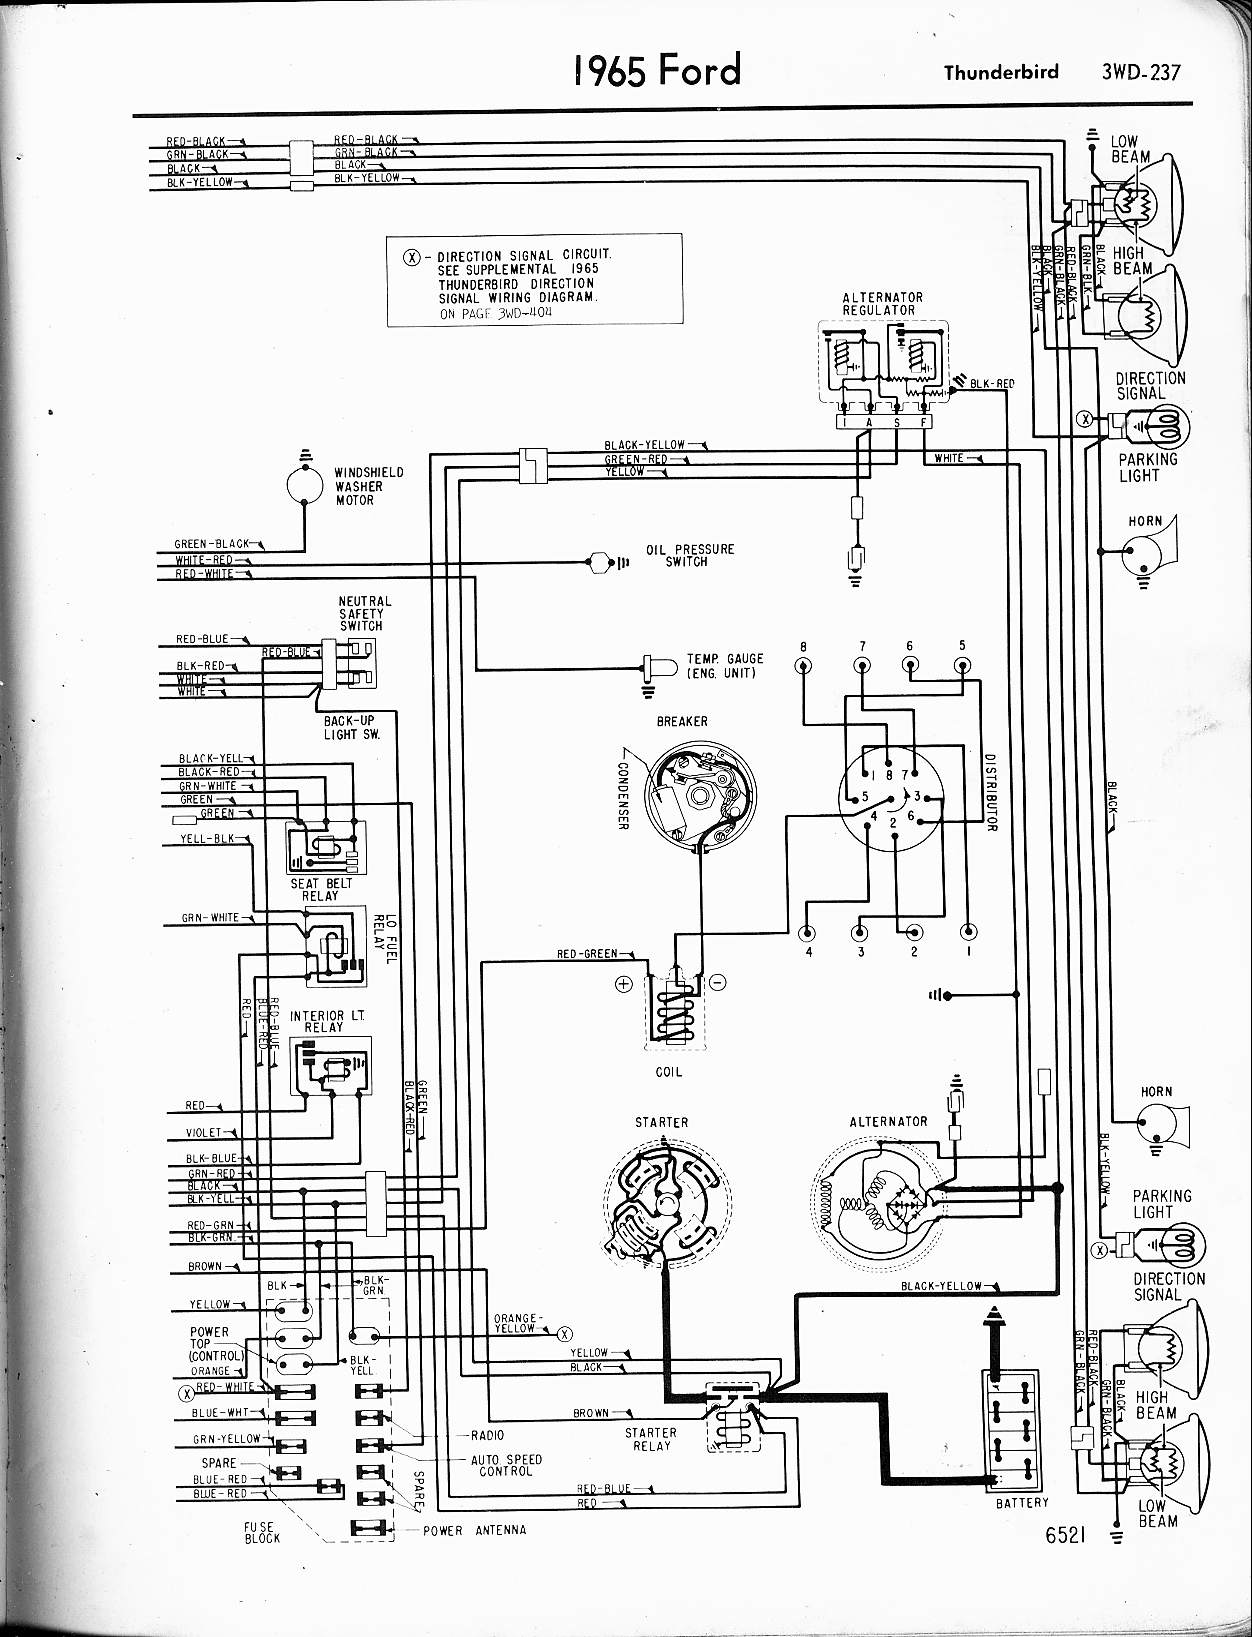 MWire5765 237 1964 1966 thunderbirfd wiring schematic 66 mustang wiring diagram 1966 ford fairlane wiring diagram at mifinder.co